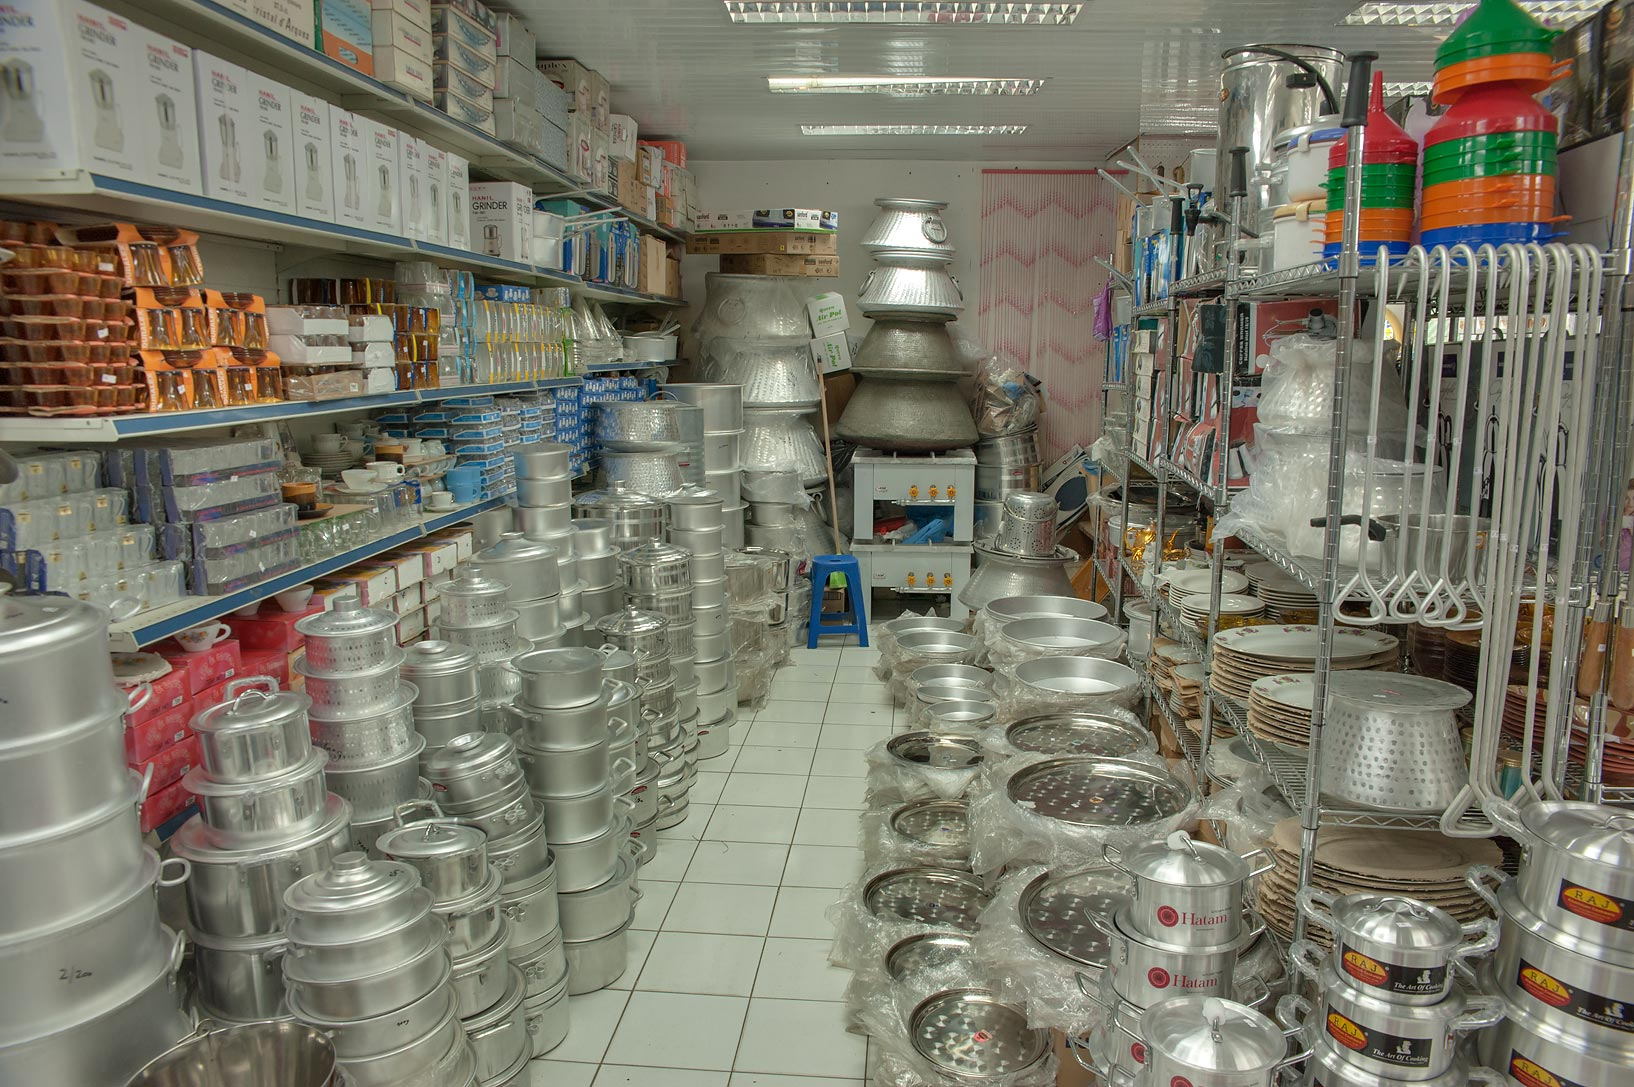 Photo 1309 26 Aluminium Kitchenware Shop In Souq Waqif